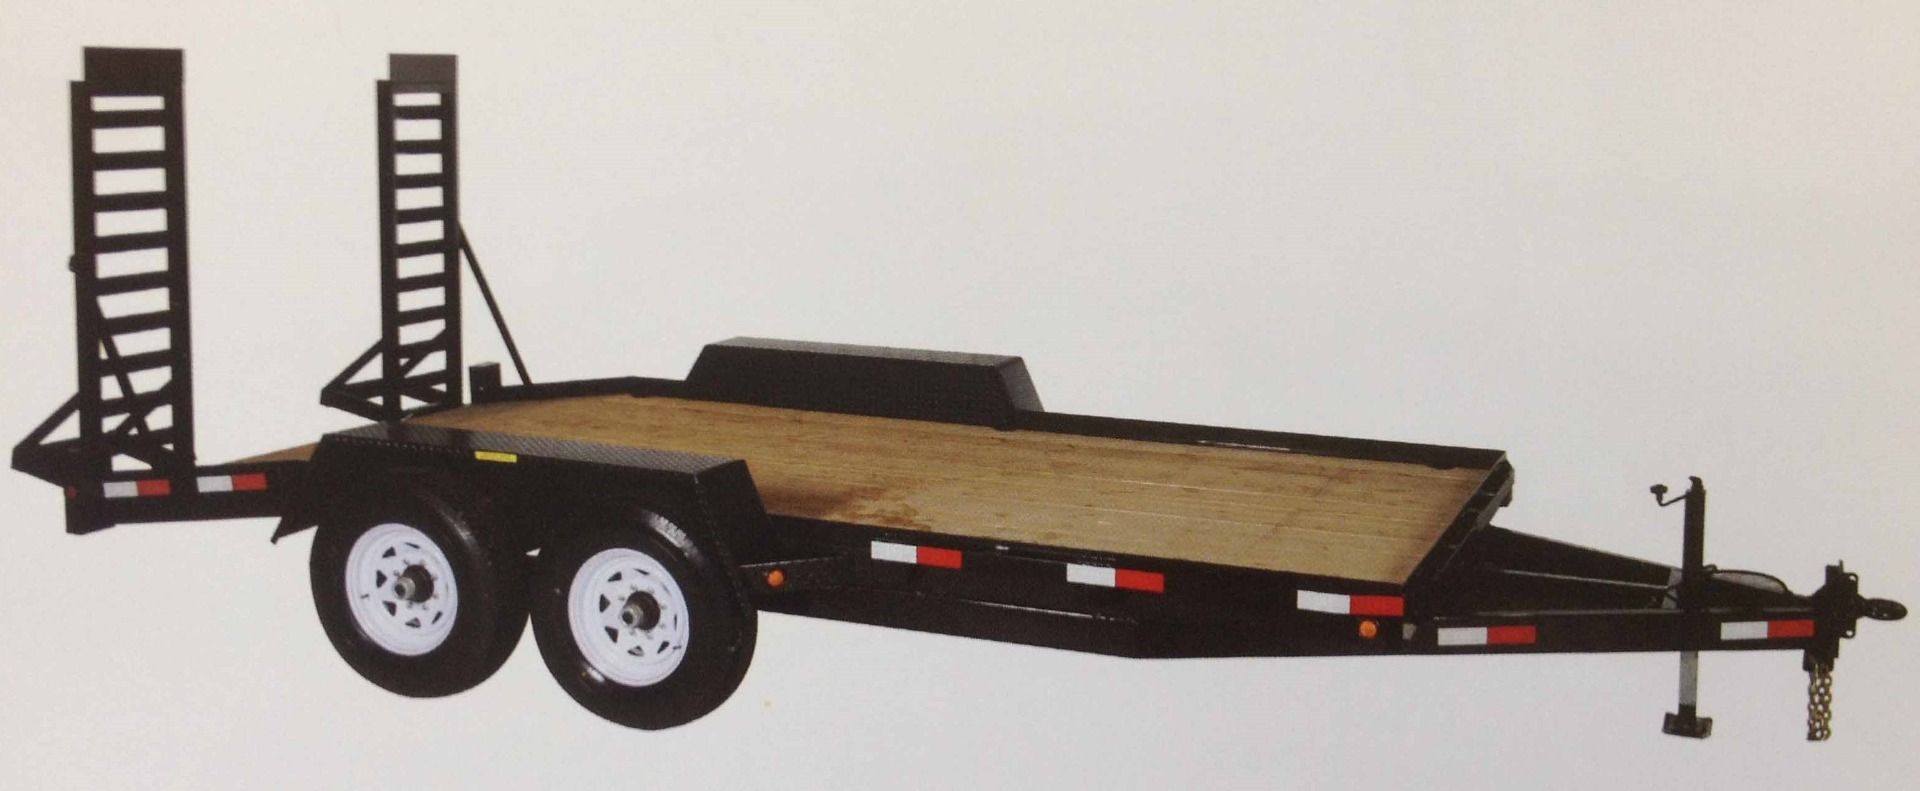 "JDJ Equipment Float with Fenders Tandem Trailer (6'8"" W x 14' L) Model BC 12000-14"